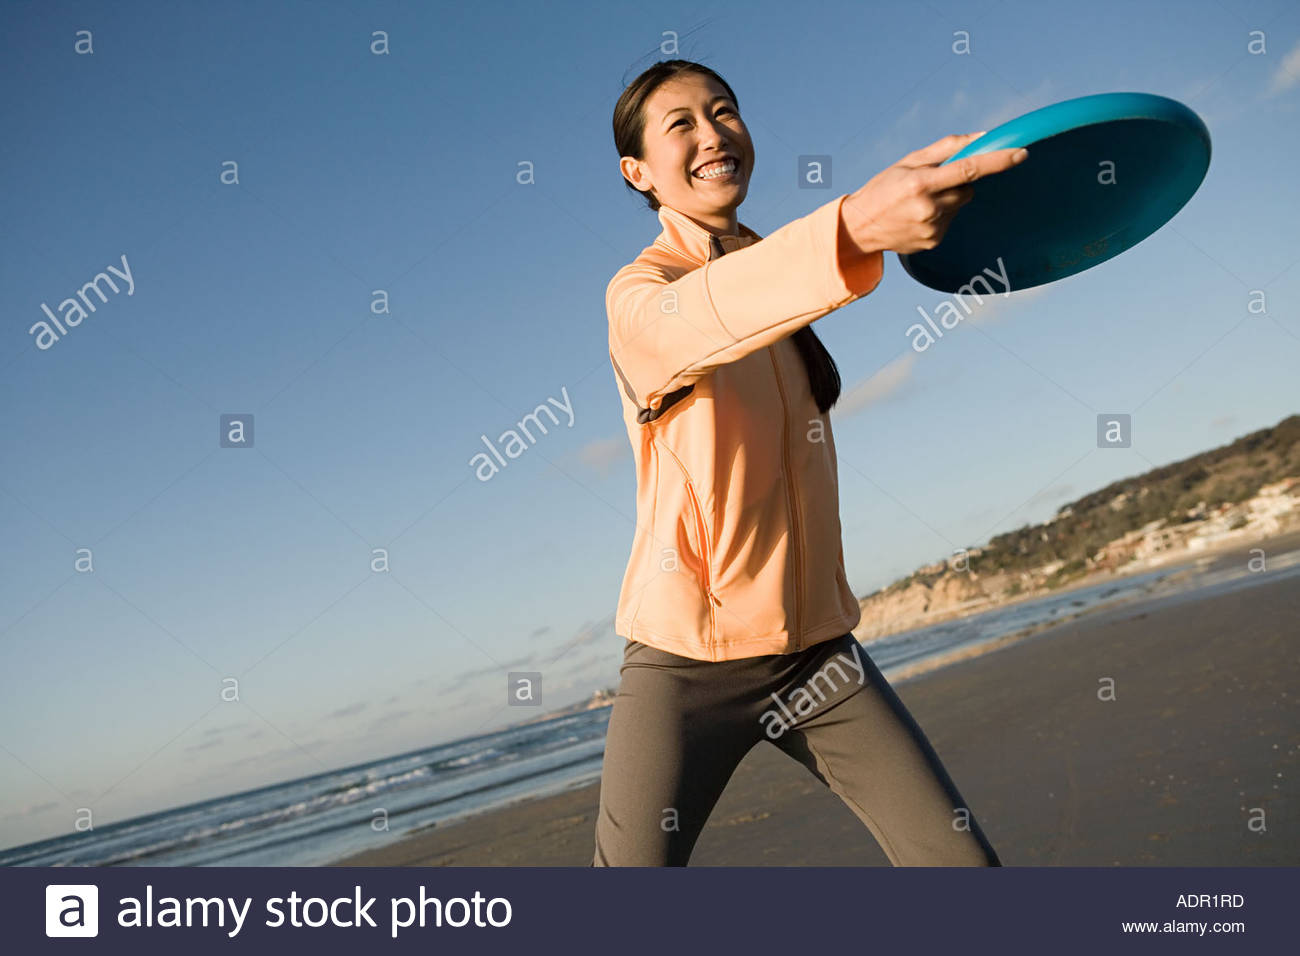 Woman throwing a lying disc - Stock Image